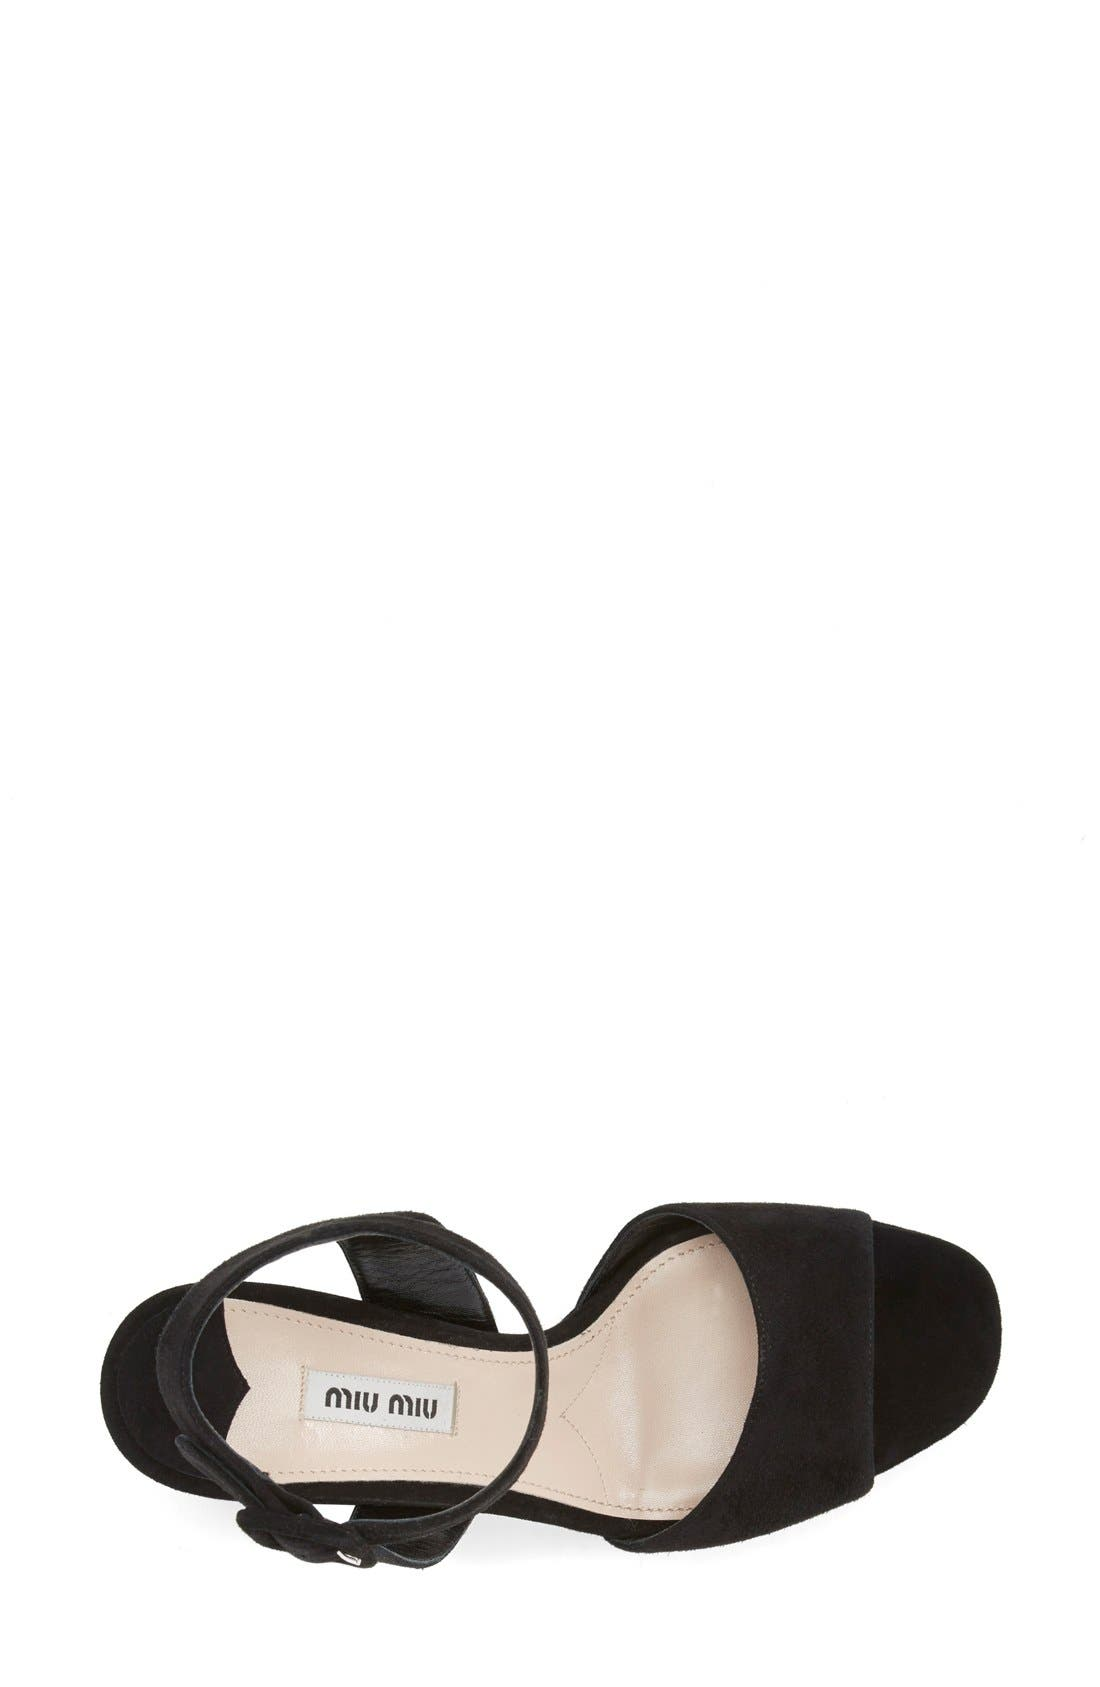 Alternate Image 3  - Miu Miu Block Heel Platform Sandal (Women)